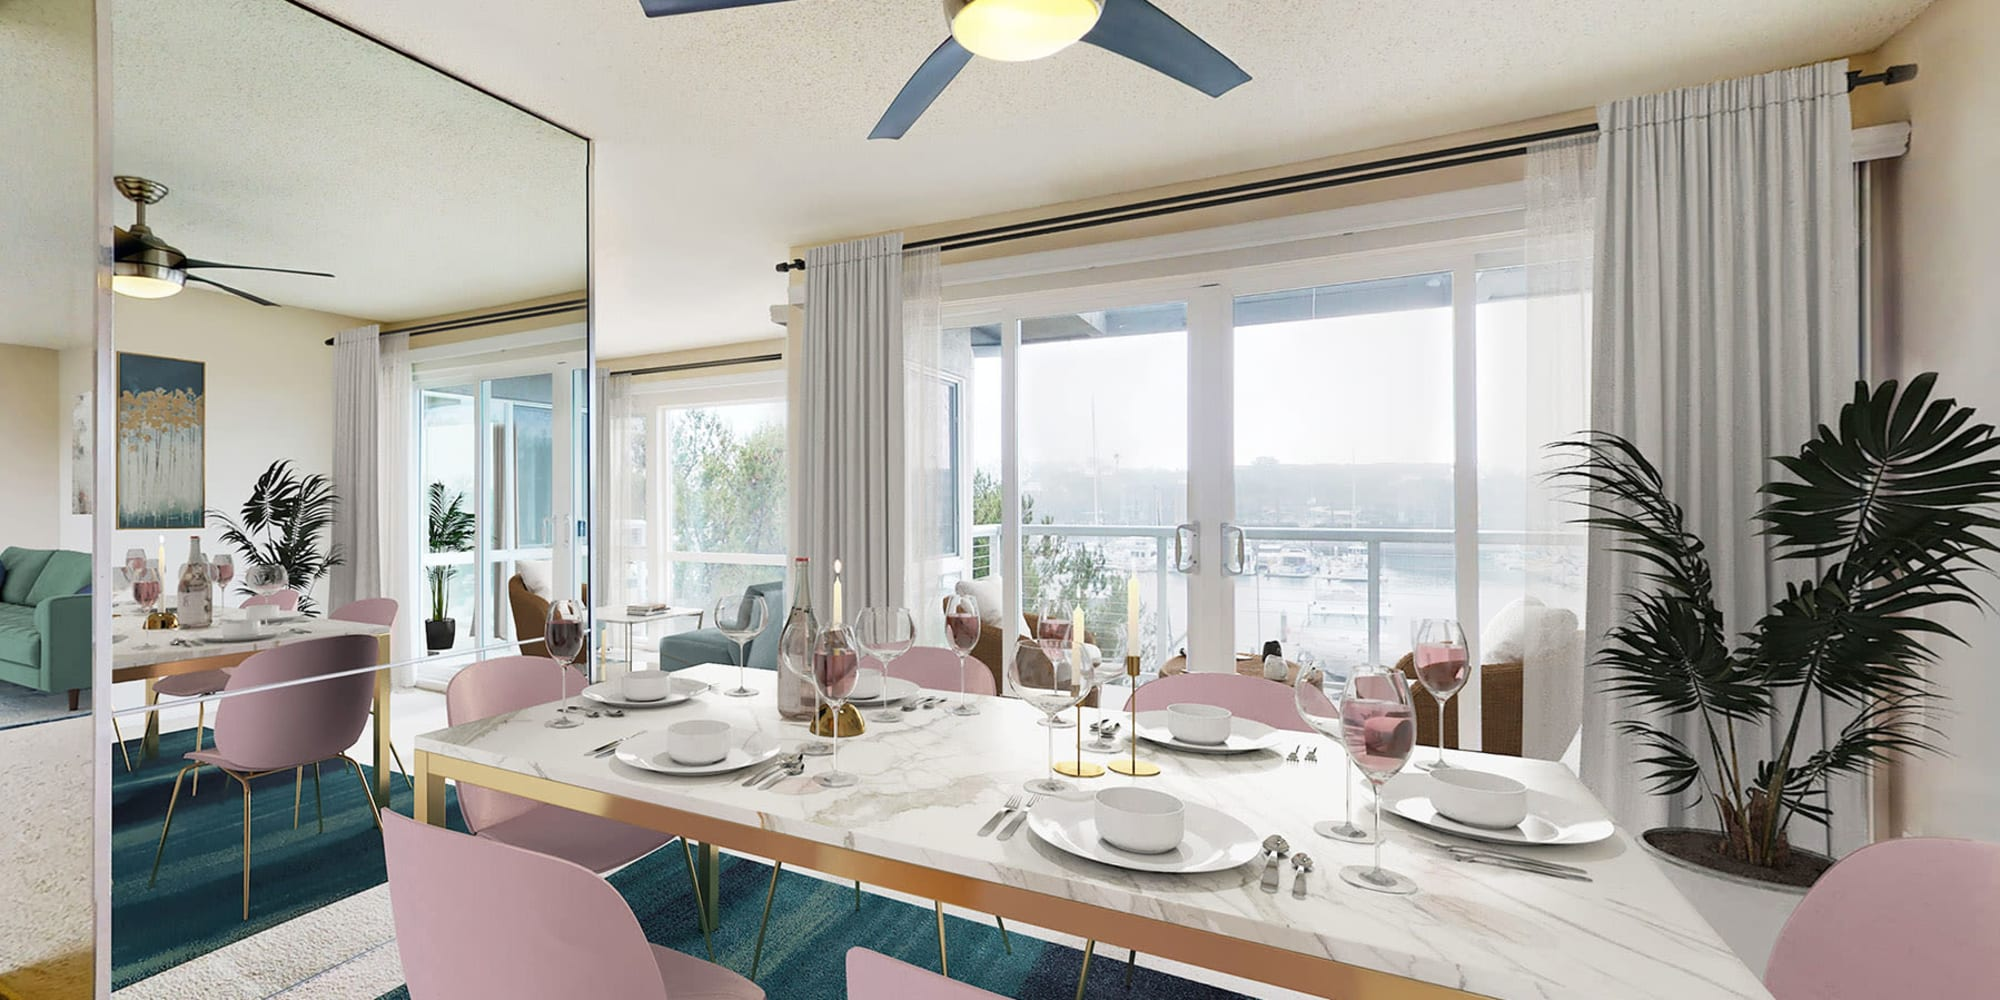 Stylish dining room with expansive waterfront view and balcony in a spacious apartment home at The Tides at Marina Harbor in Marina del Rey, California